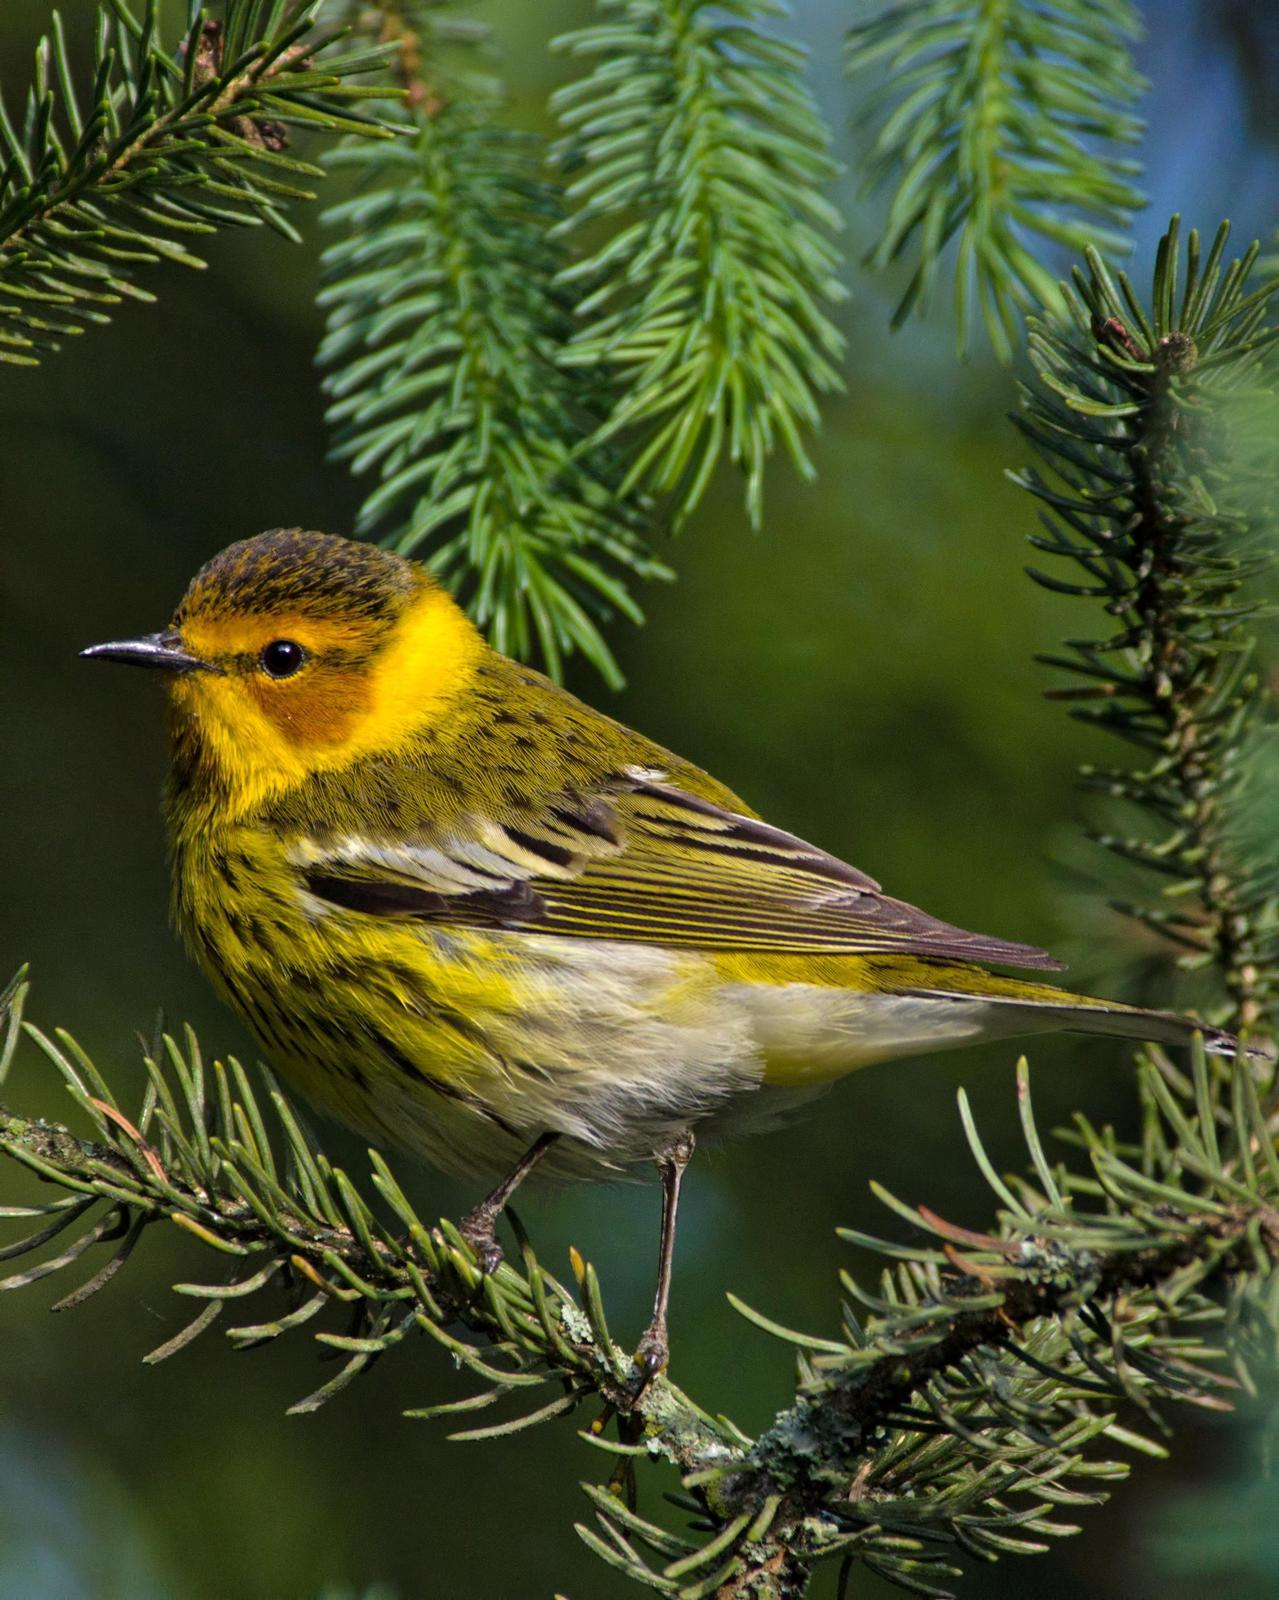 Cape May Warbler Photo by Rob Dickerson